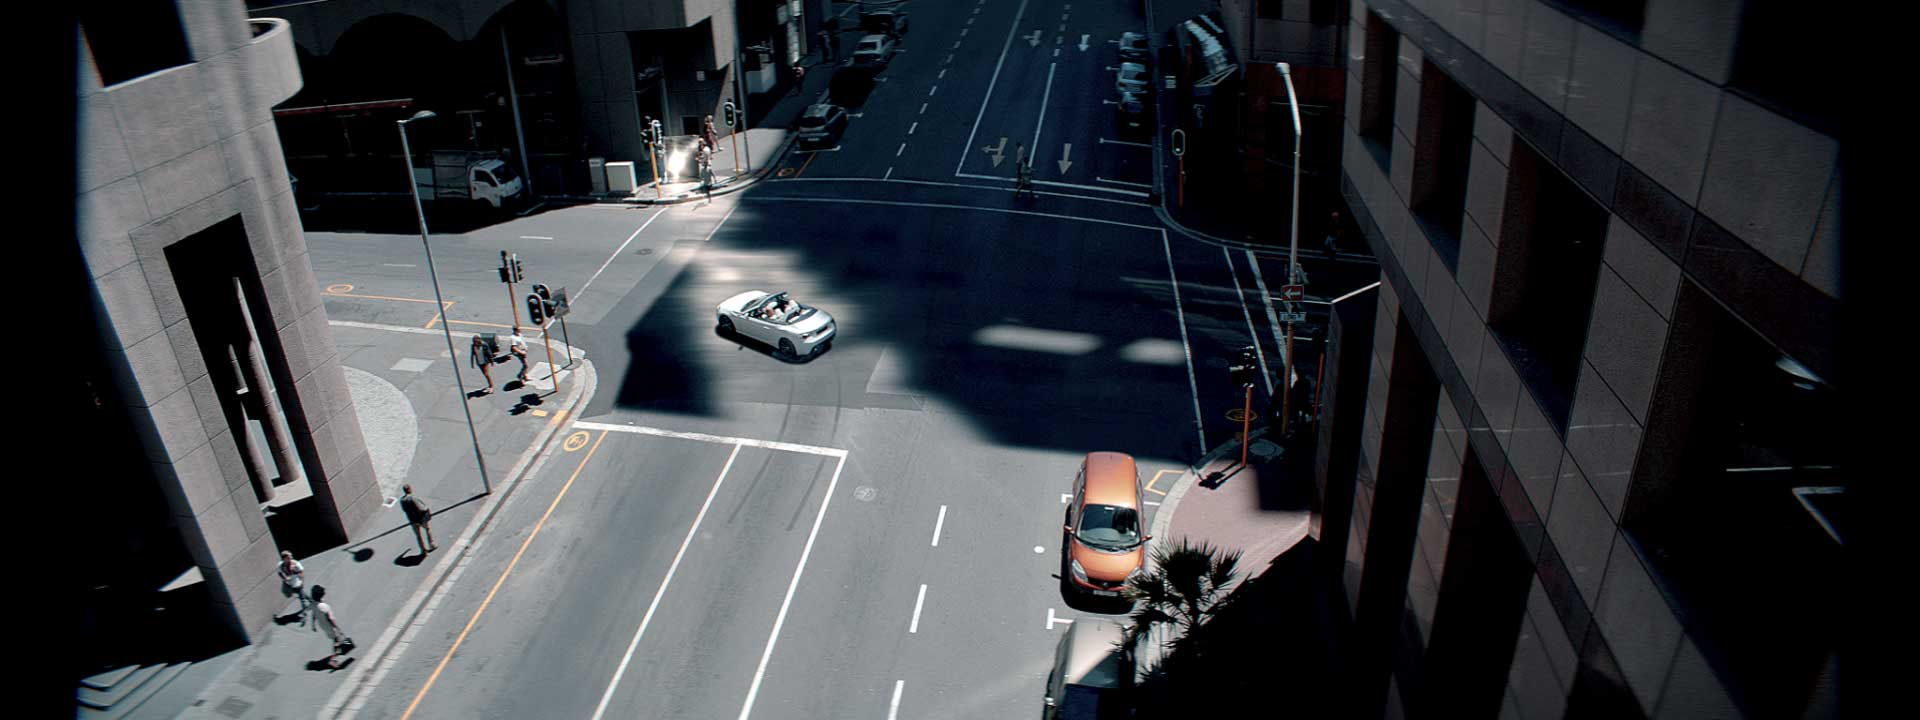 Crossing in a city. Still from Toyota FT-86 open – Commercial